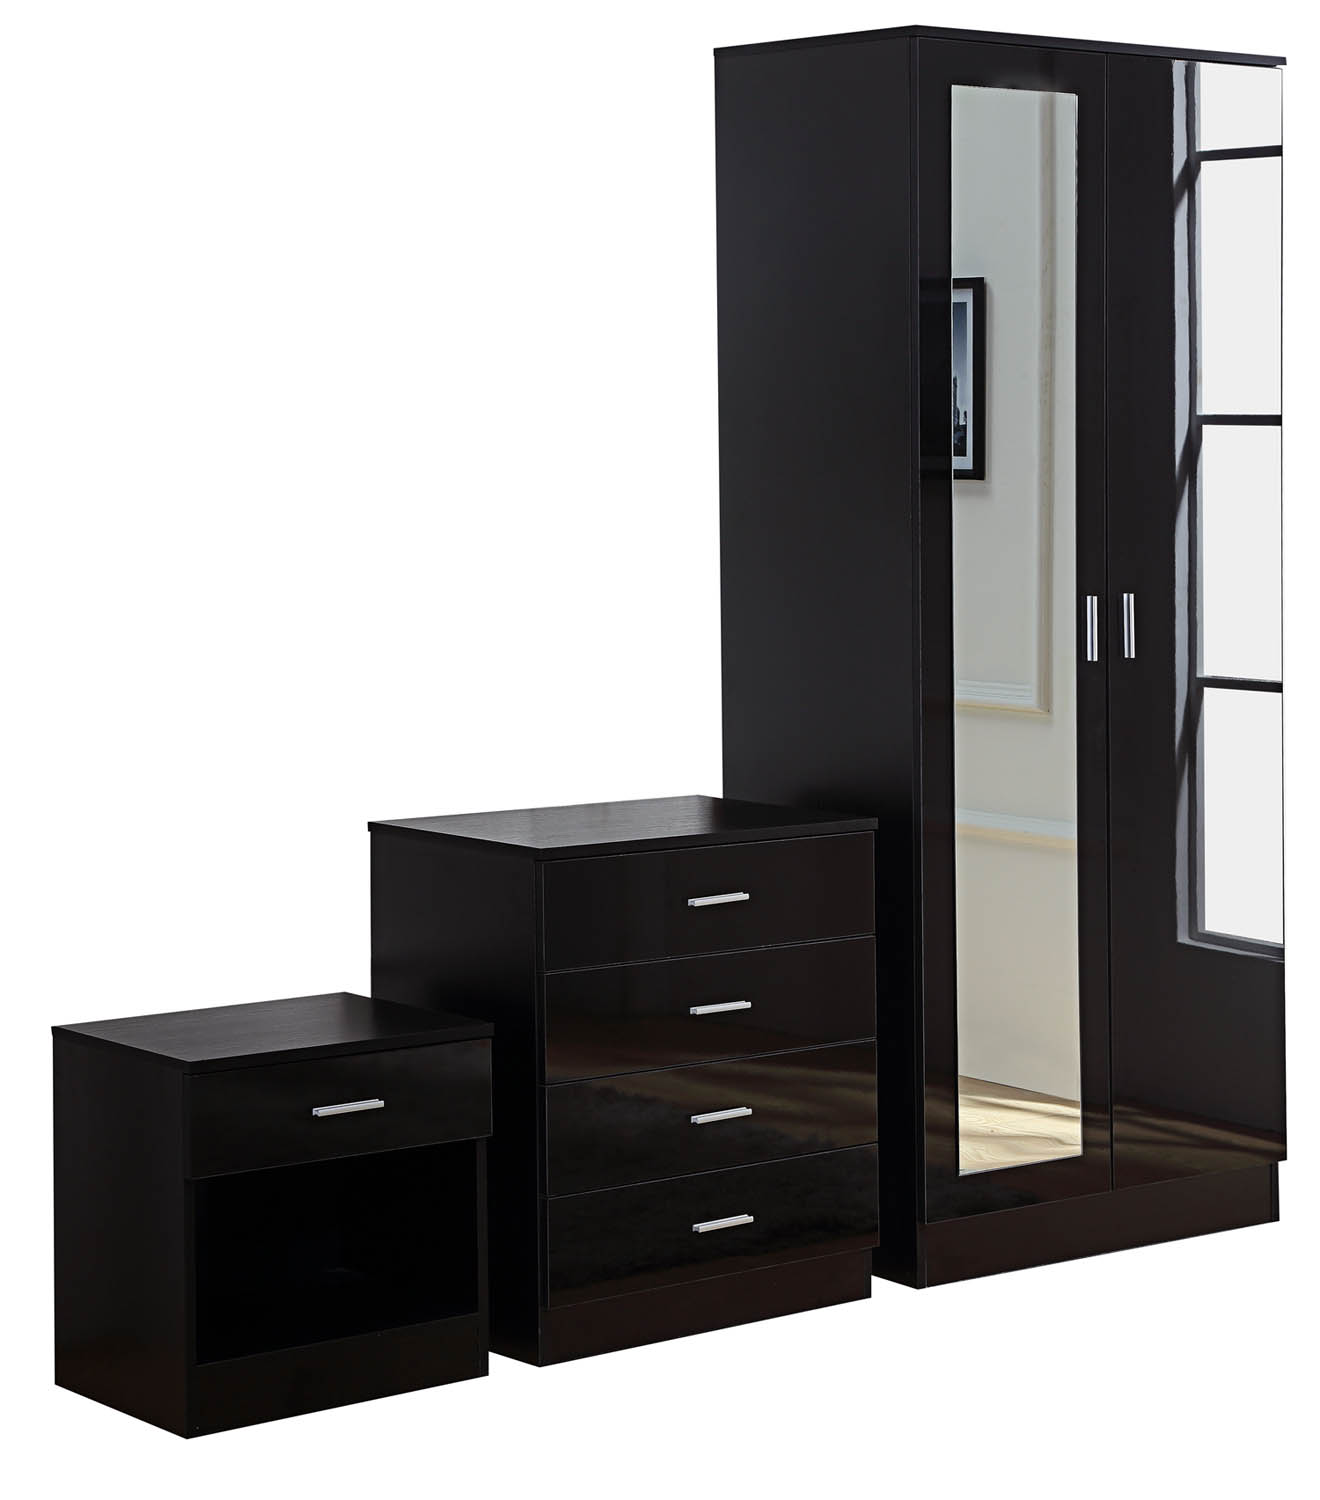 bedroom furniture high gloss black photo - 4